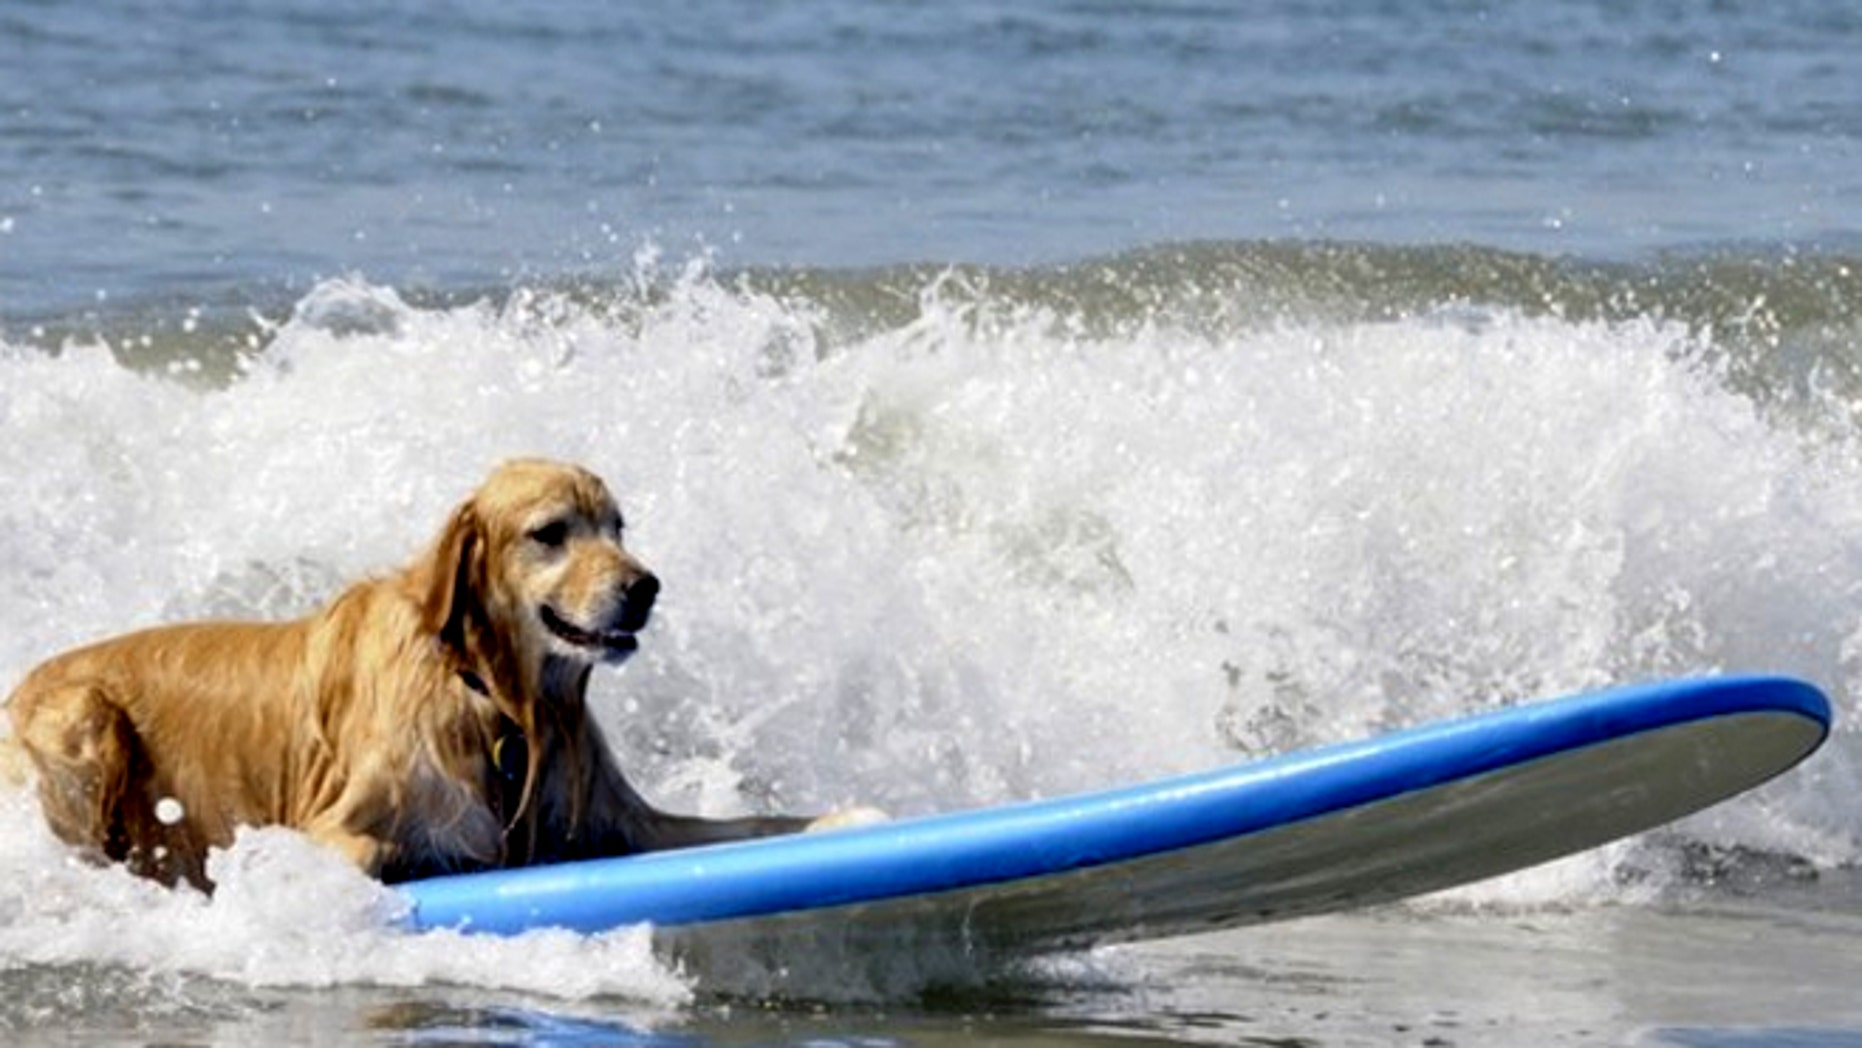 This luxury dog vacation package includes surfing lessons for your pet.